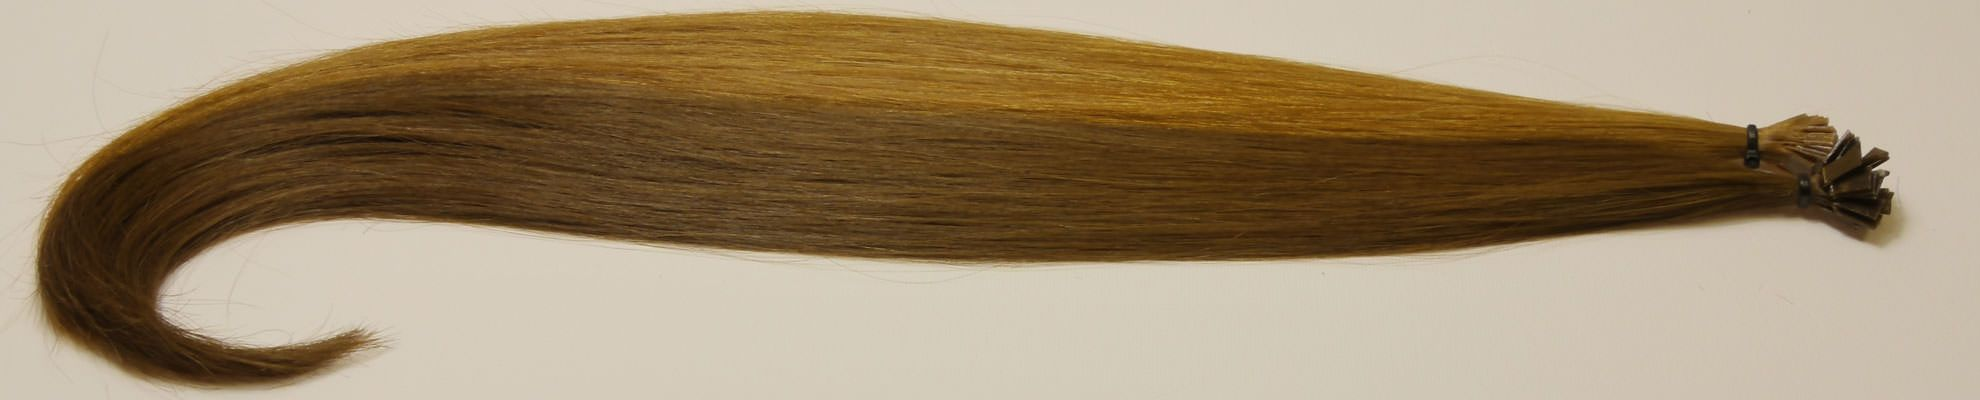 keratin-extensions-webbanner-4-intouch-haarstraehne